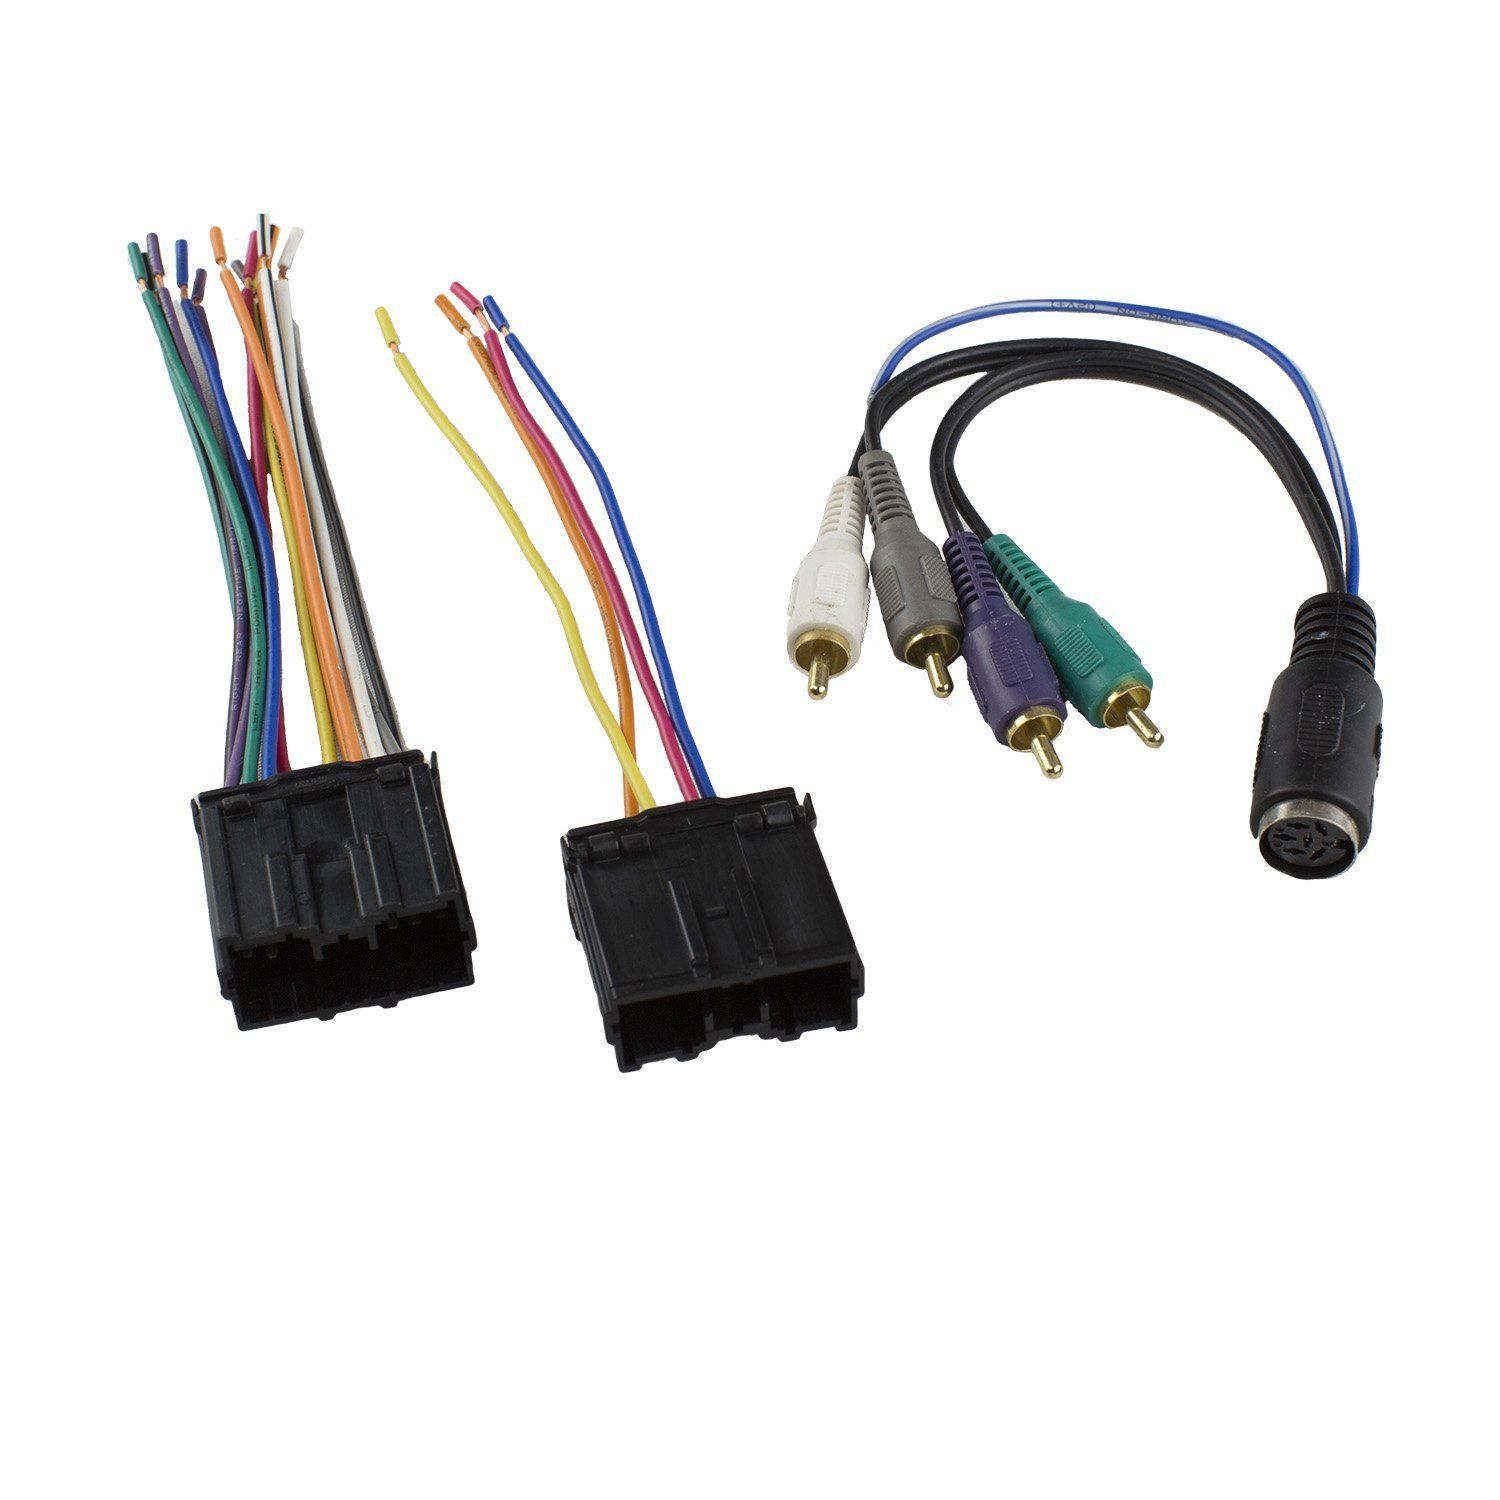 novosonics mif 7004 wiring harness for mitsubishi 4 speaker with amp integration 1994 2007 fits existing connector in your vehicle  [ 1500 x 1500 Pixel ]